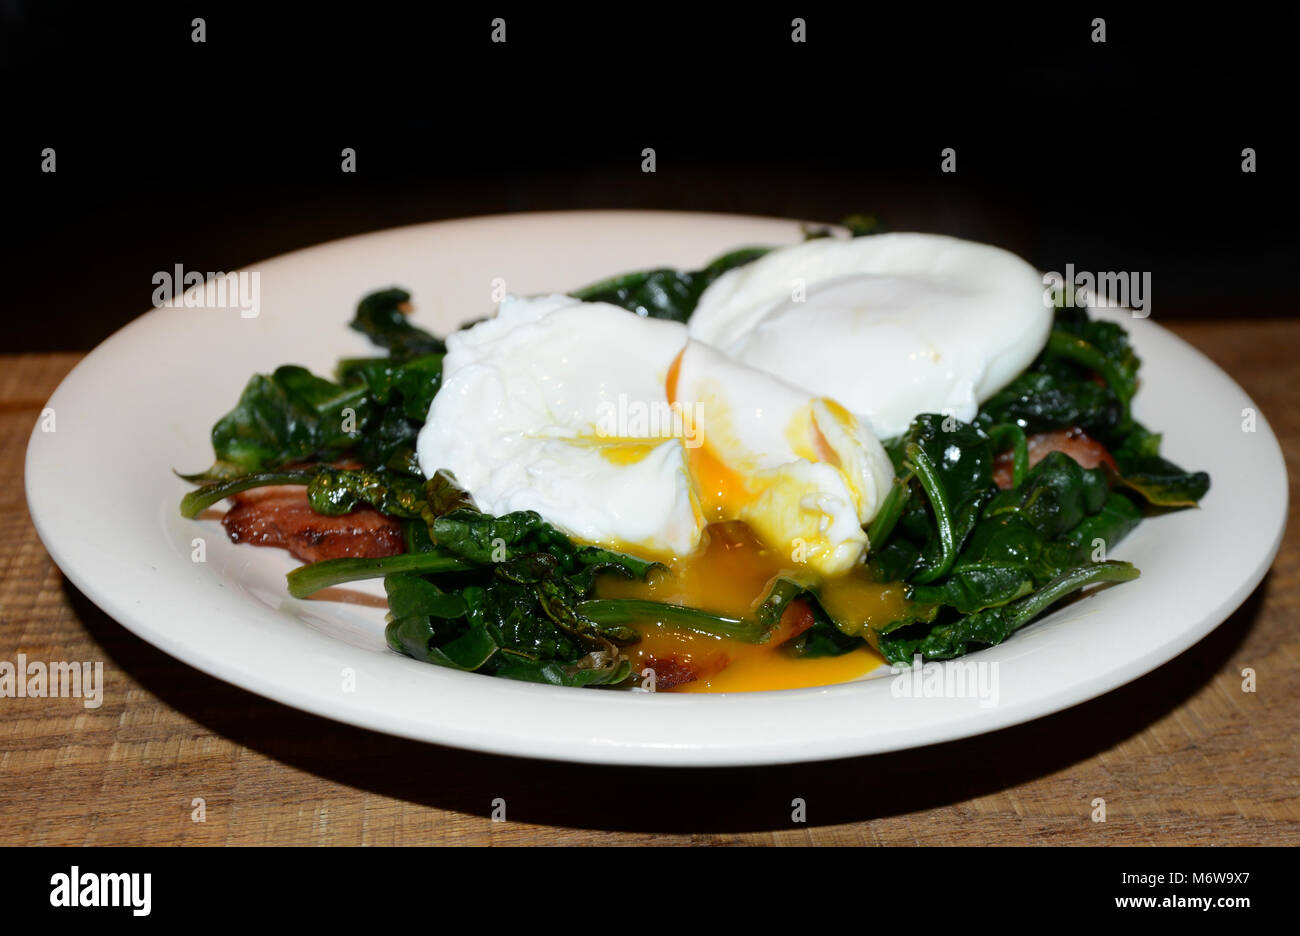 A plate of Eggs Florentine. - Stock Image